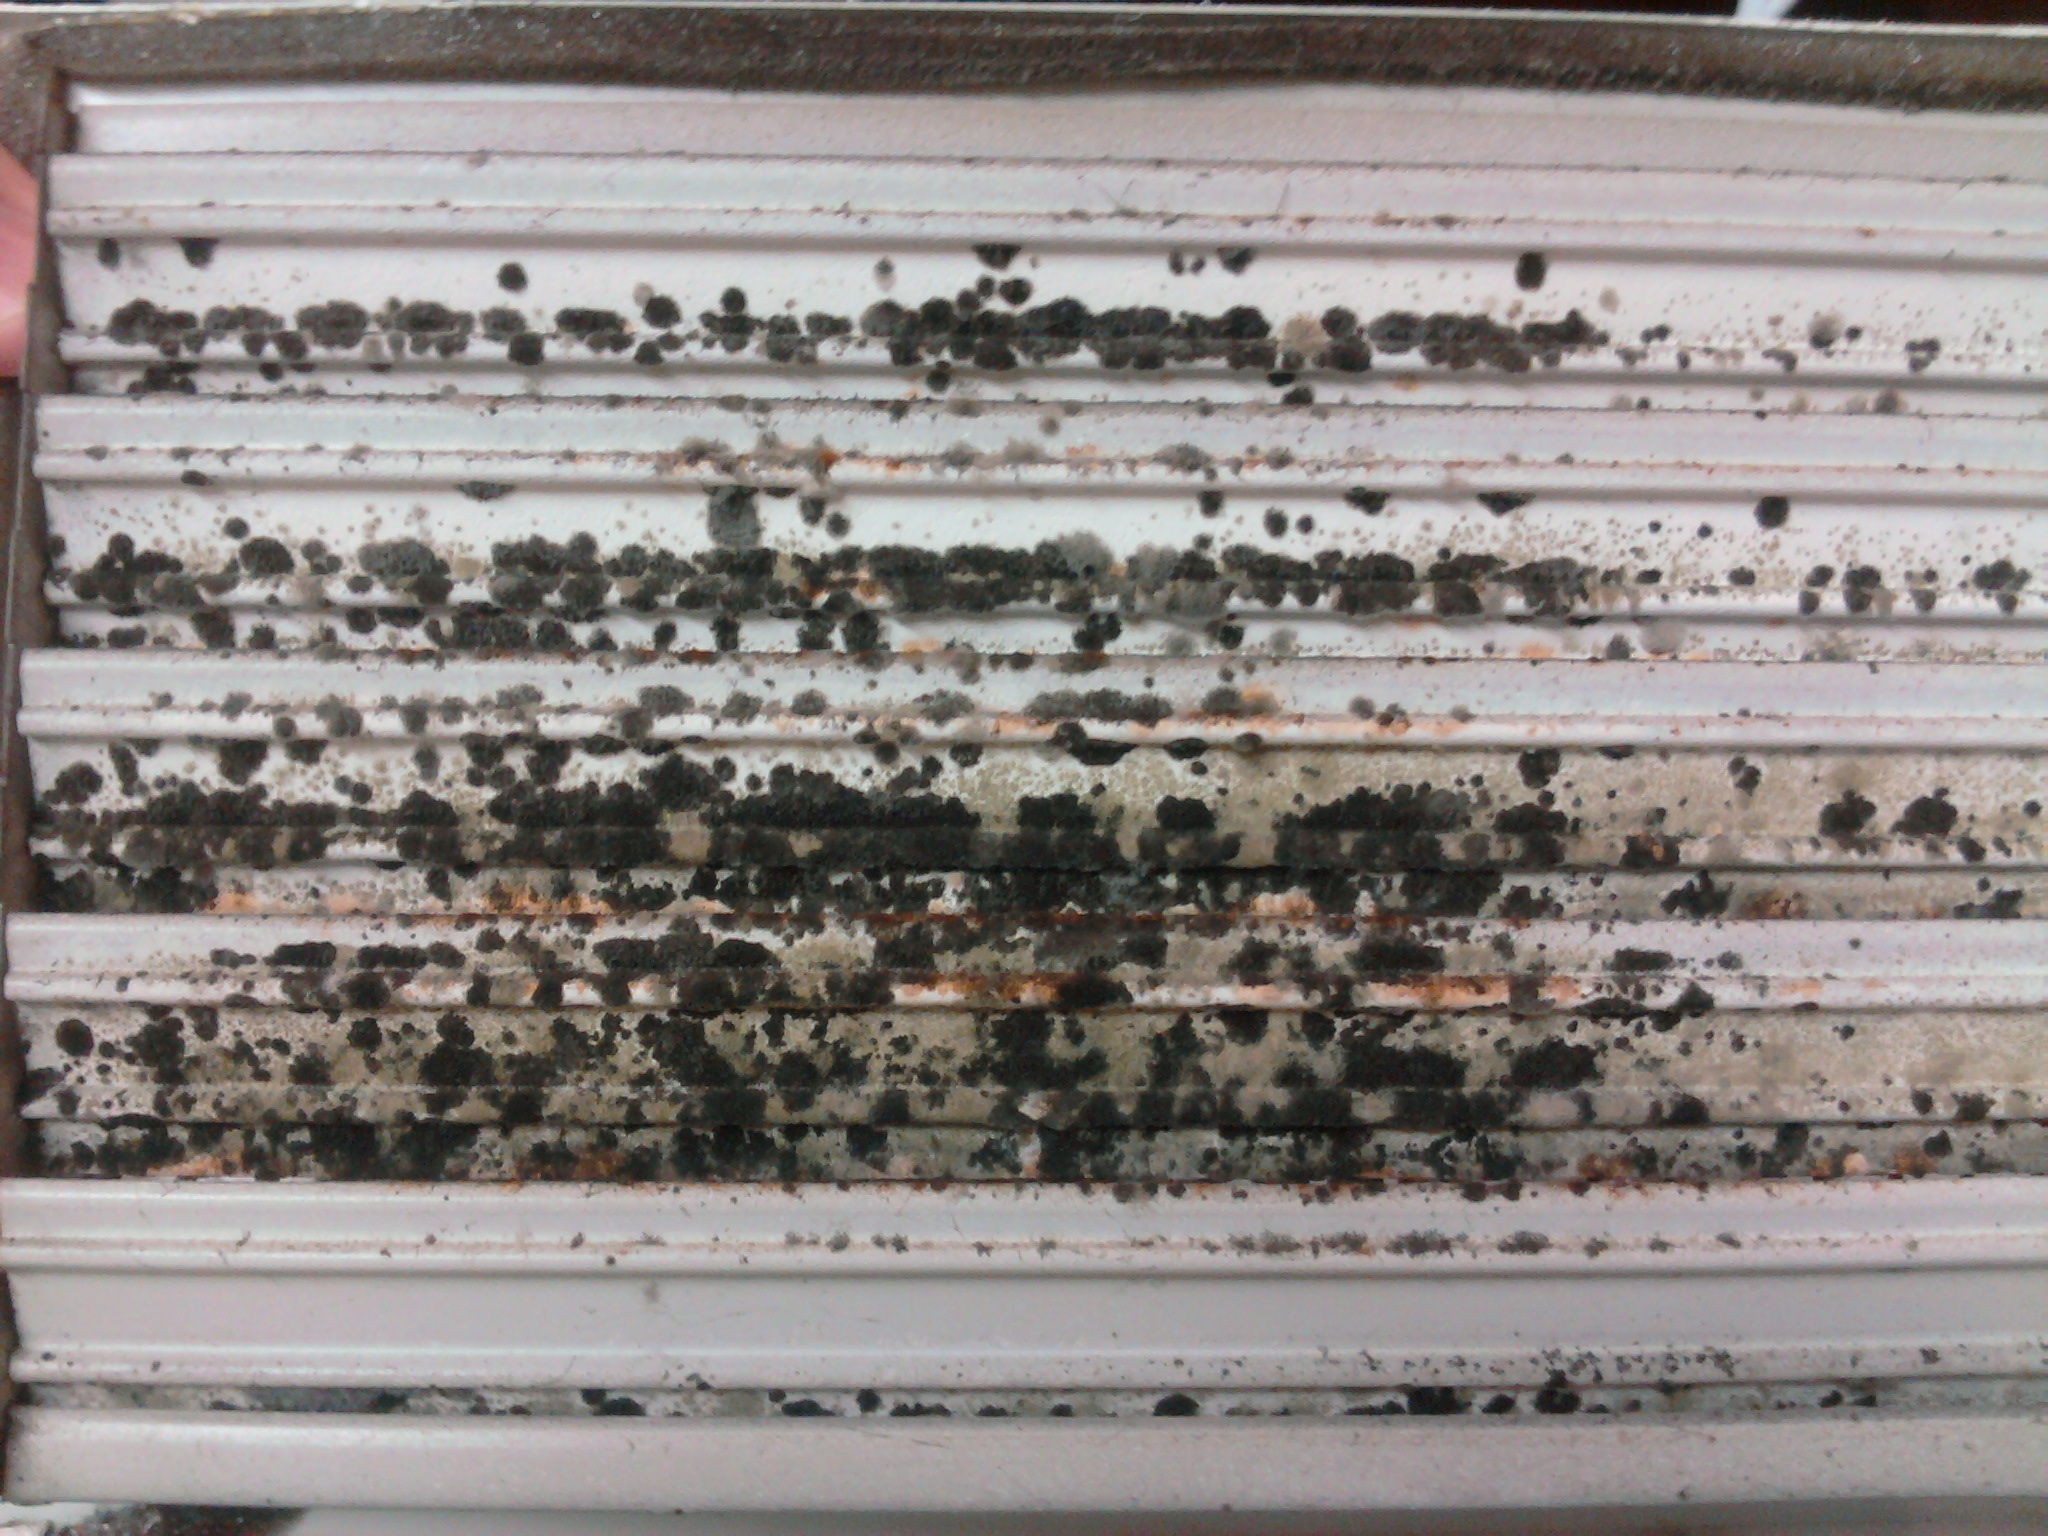 winter is time to decontaminate toxic mold growth inside